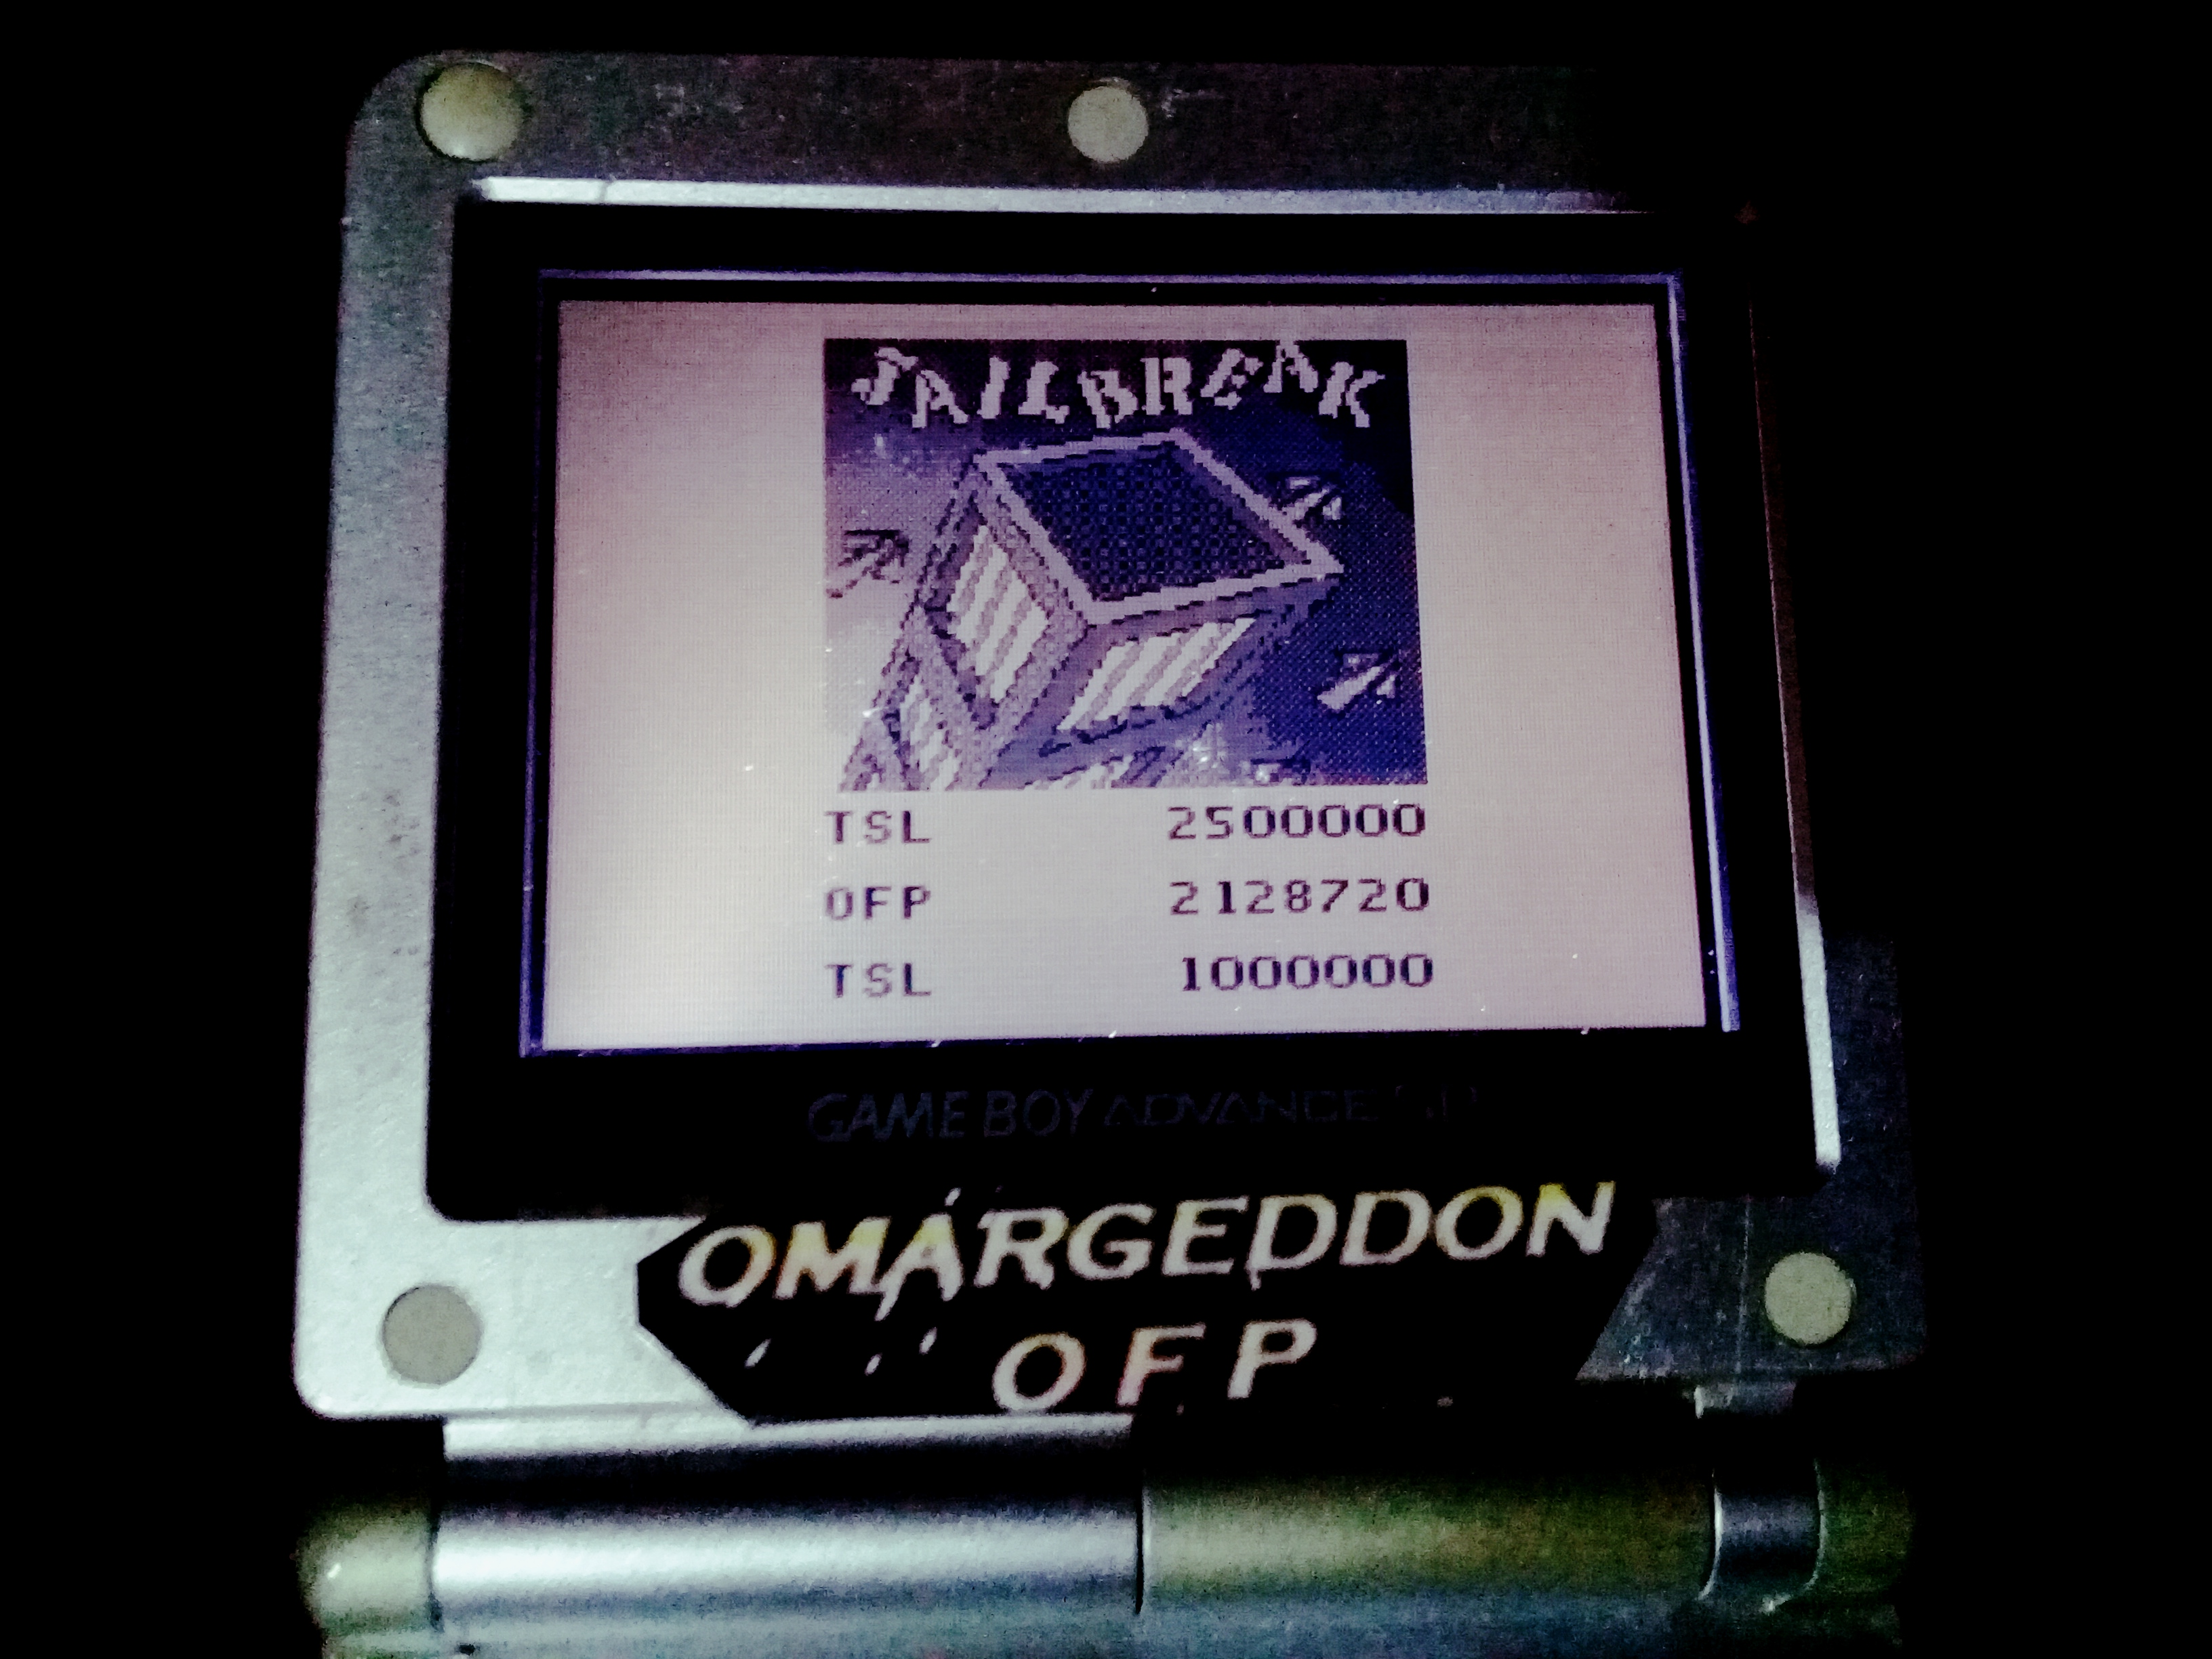 omargeddon: Pinball Mania: Jailbreak (Game Boy) 2,128,720 points on 2020-07-25 02:02:04